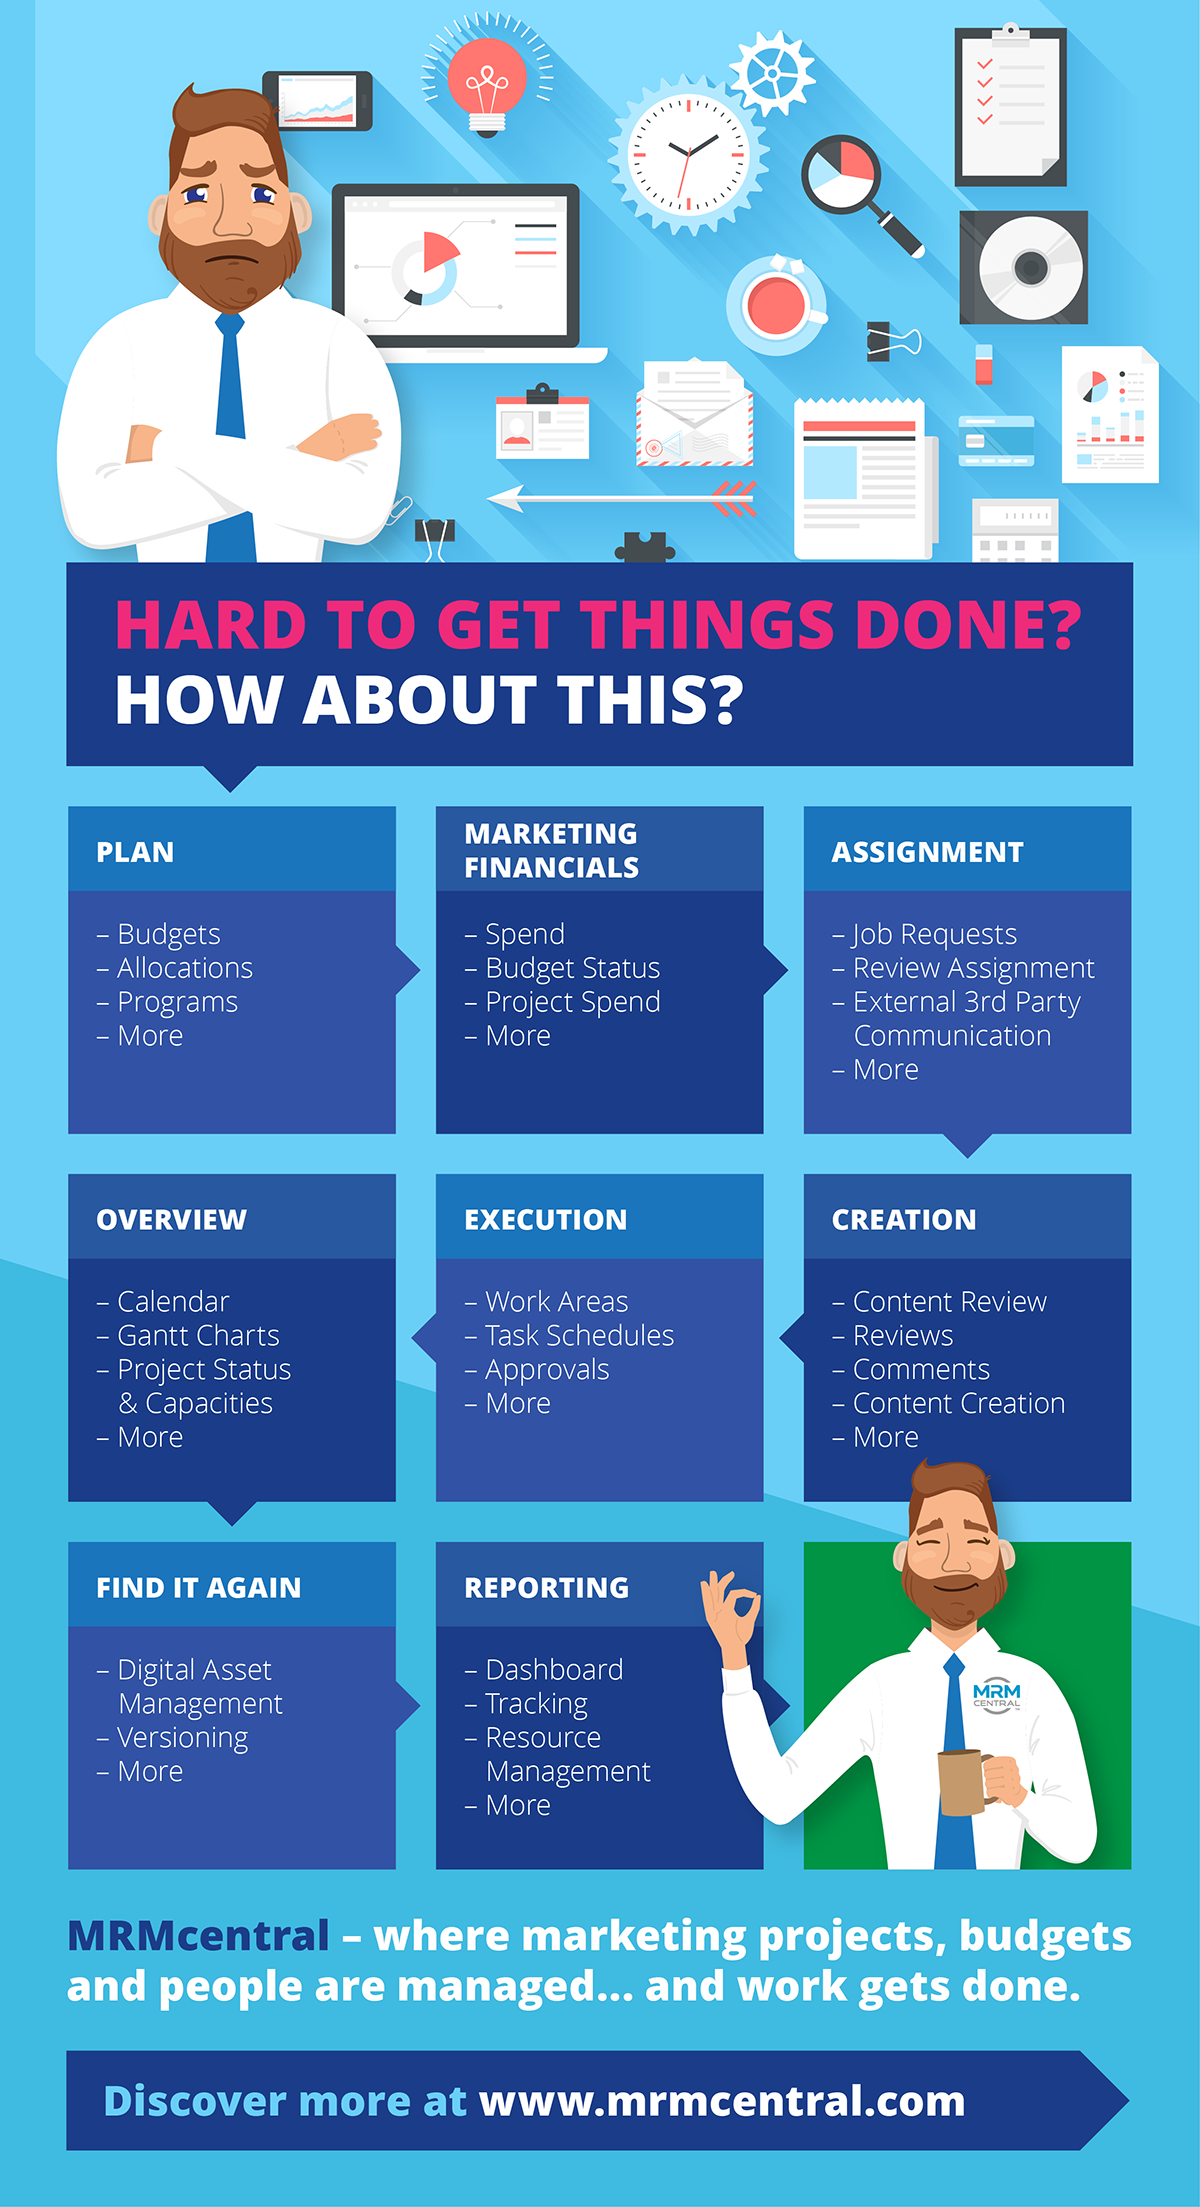 Are you finding it hard to get things done? Take a look at this...